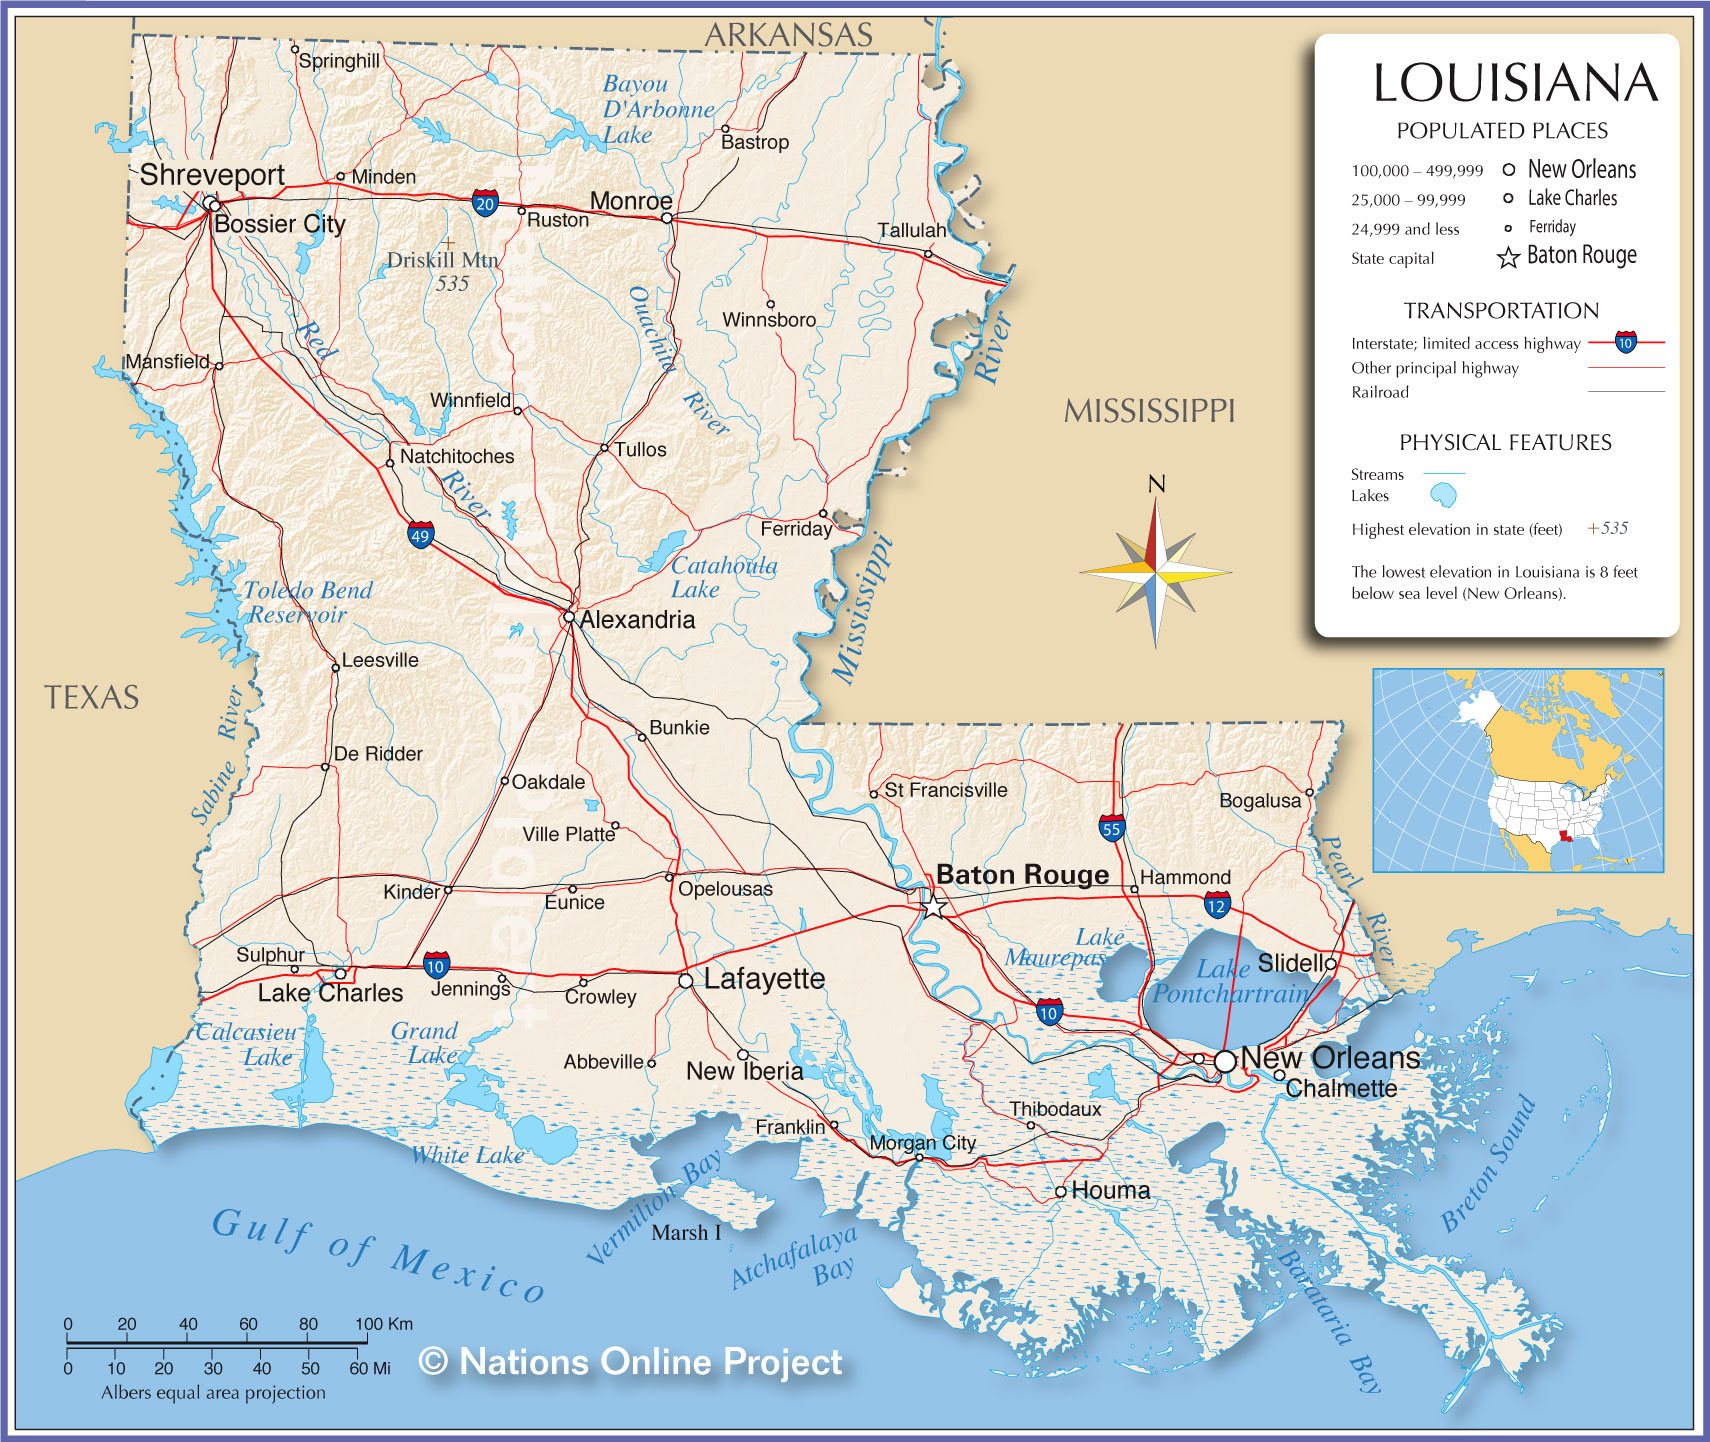 Reference Maps Of Louisiana, Usa - Nations Online Project - Texas Louisiana Border Map